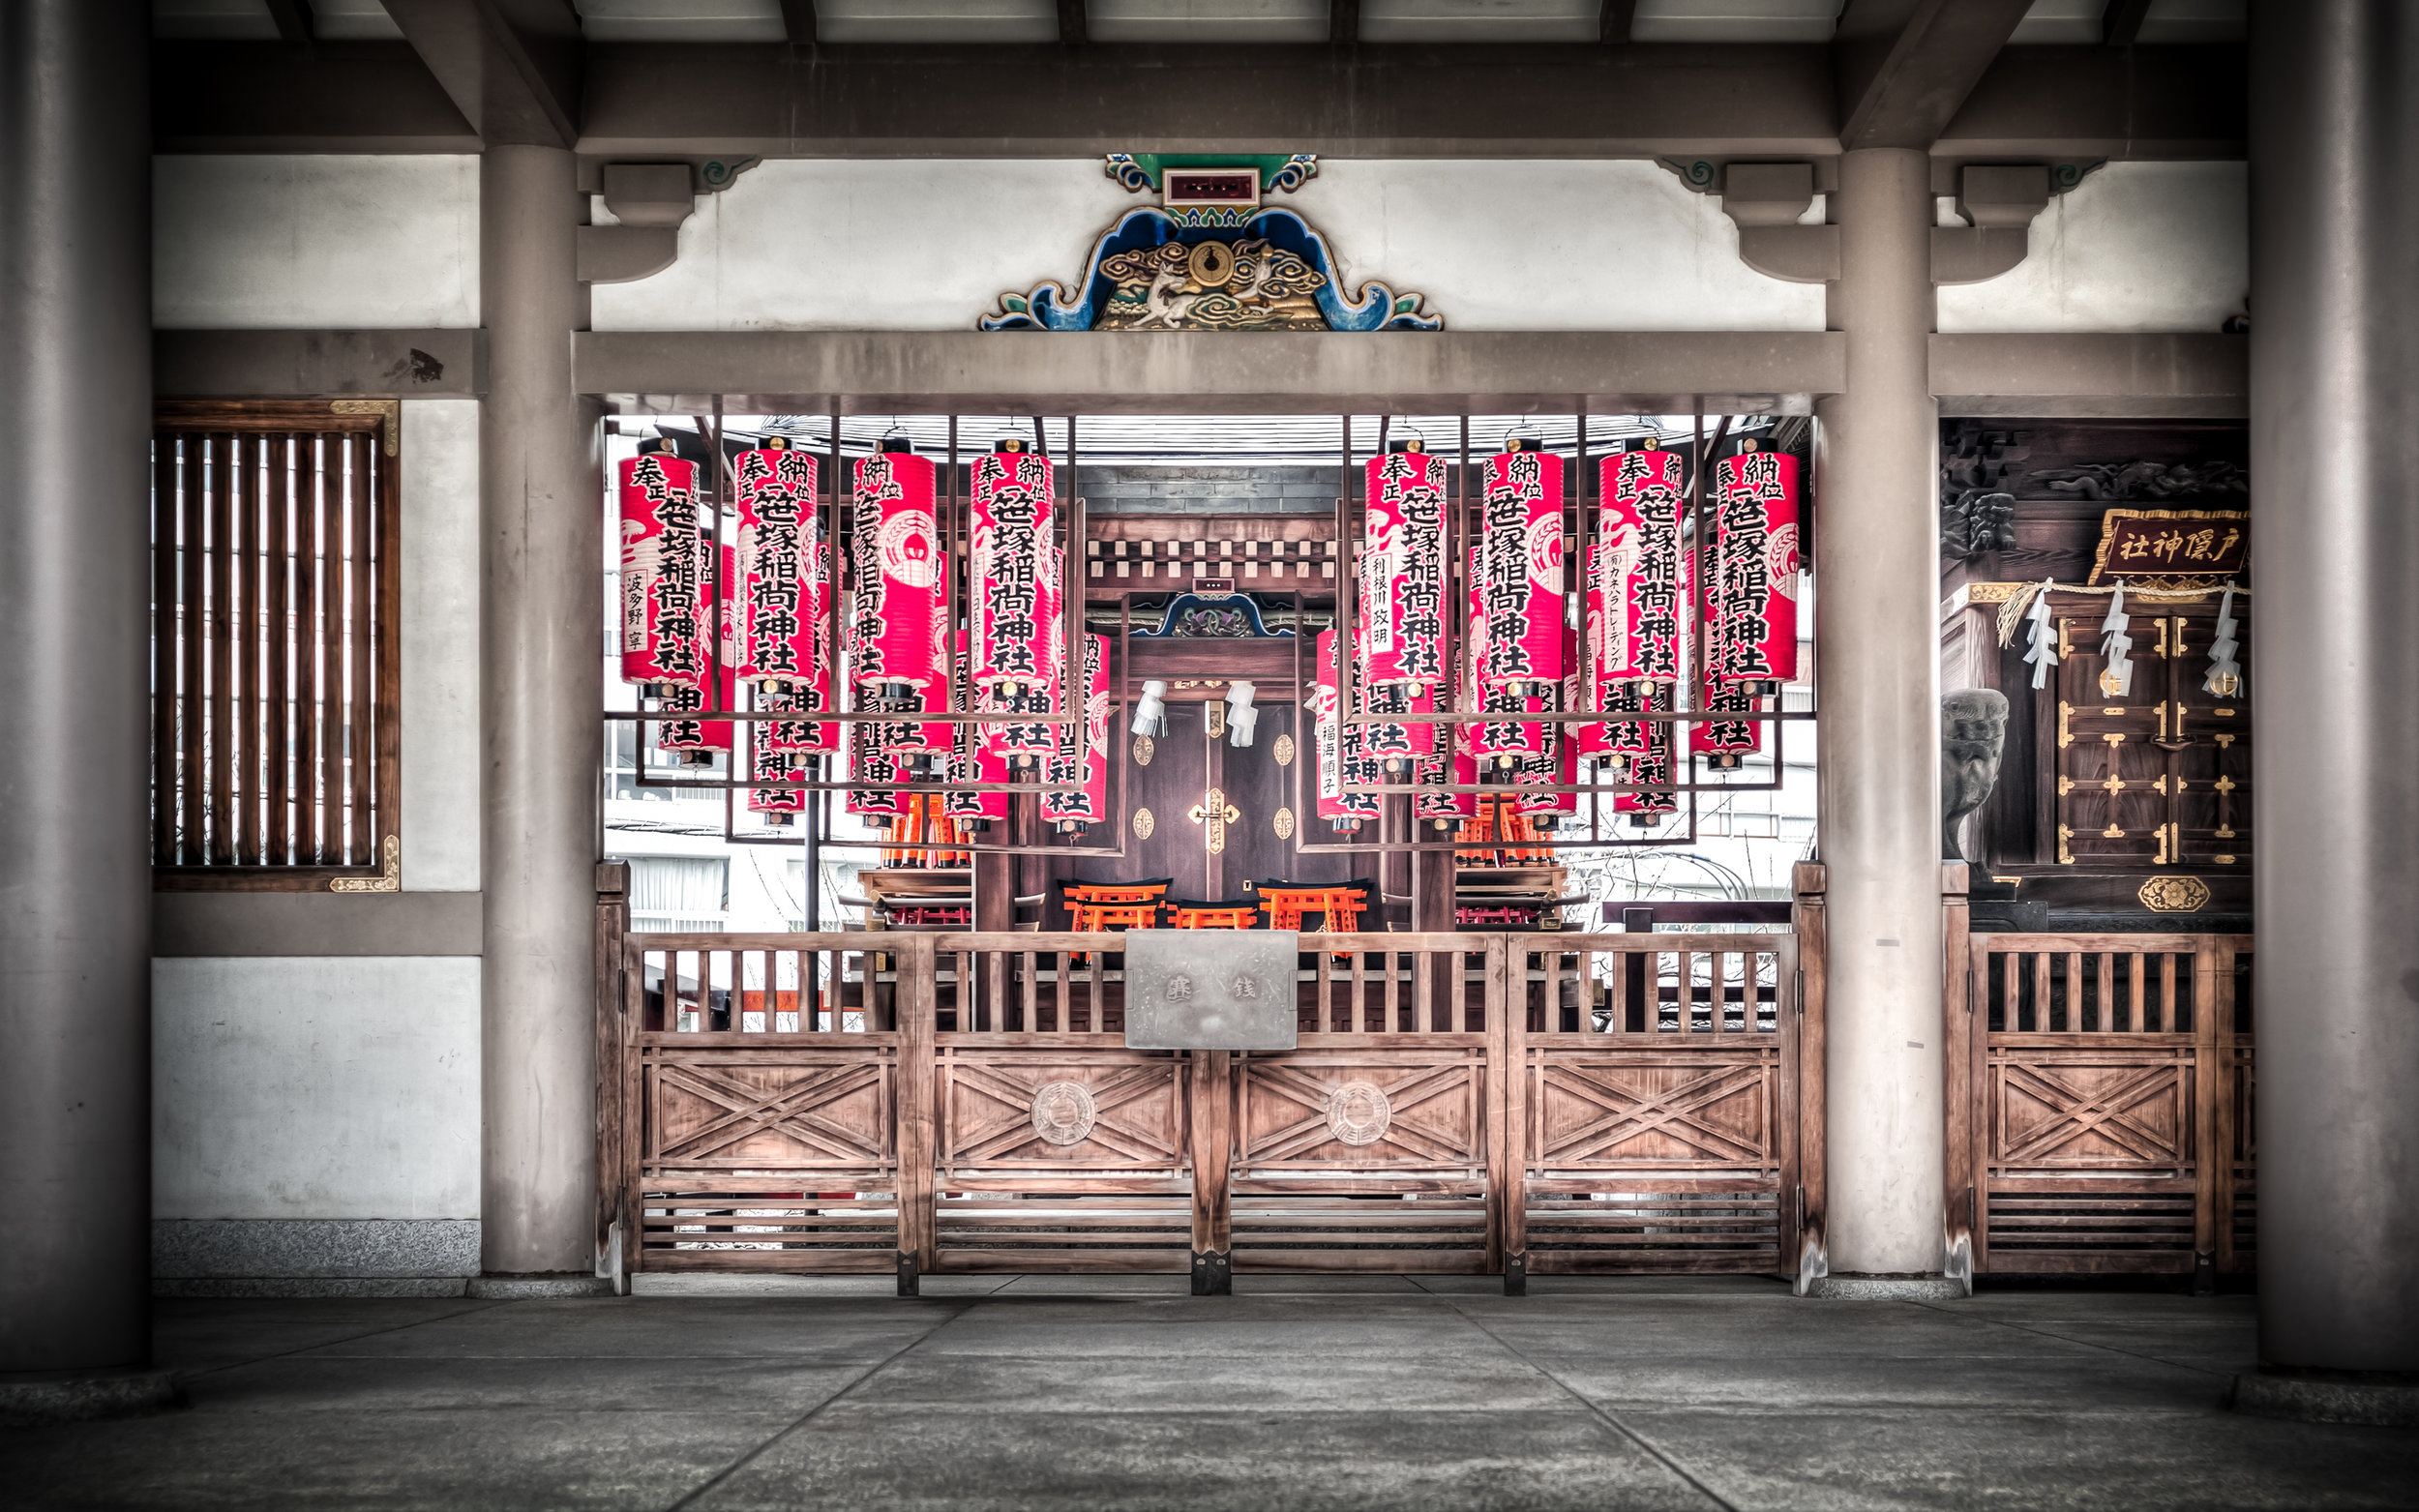 Temples-and-Shrines-06.jpg